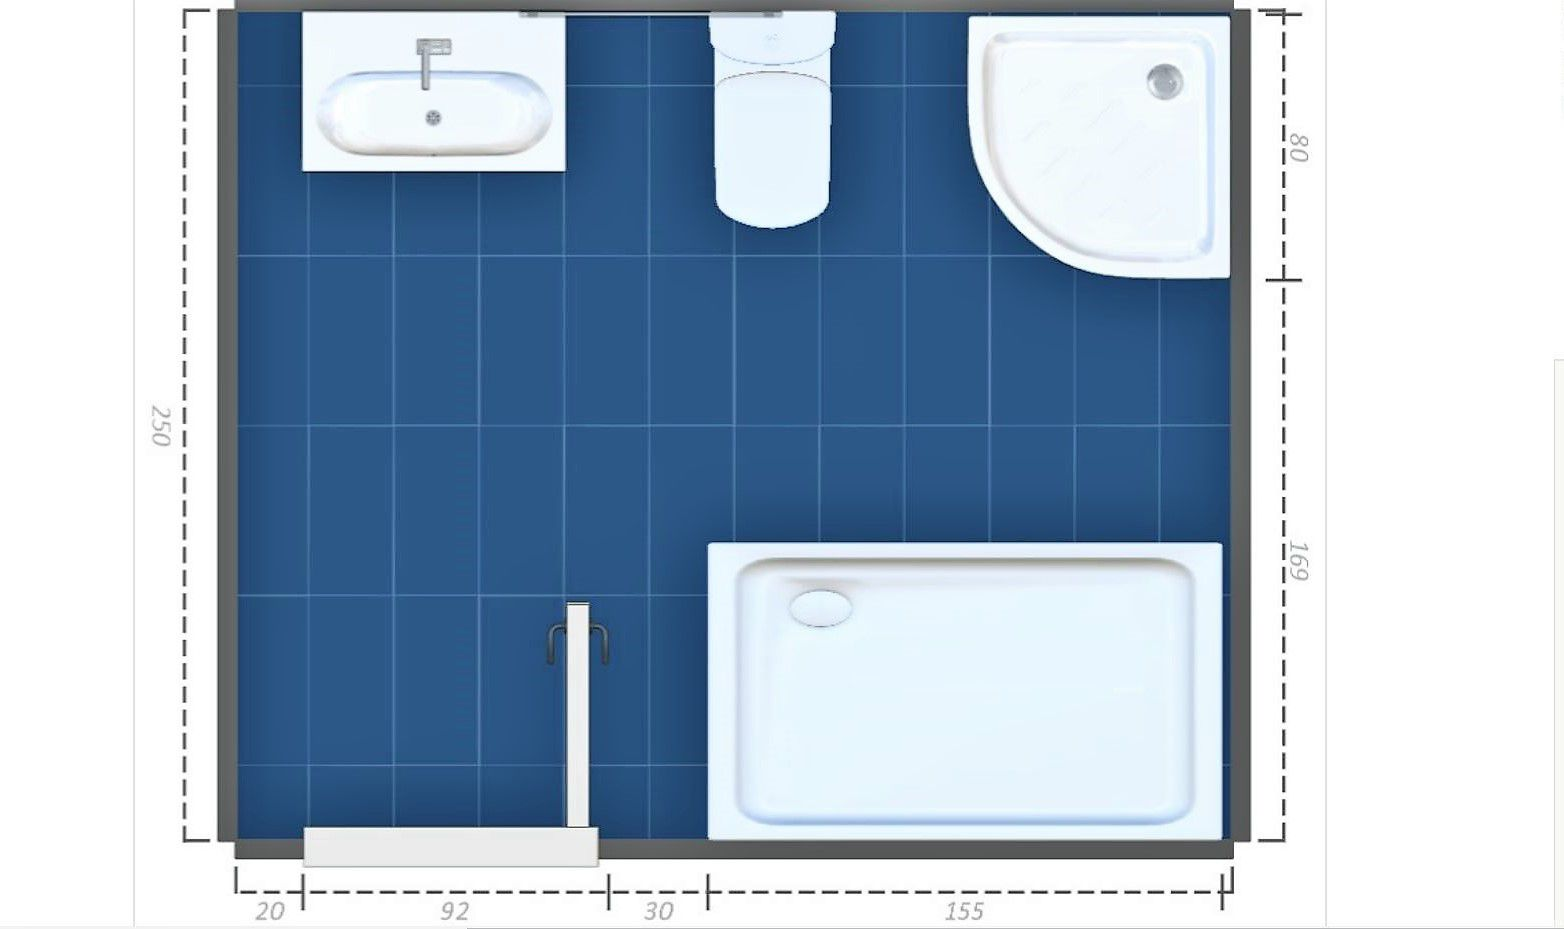 6x9 bathroom layout - 6x9 Bathroom Layout 55